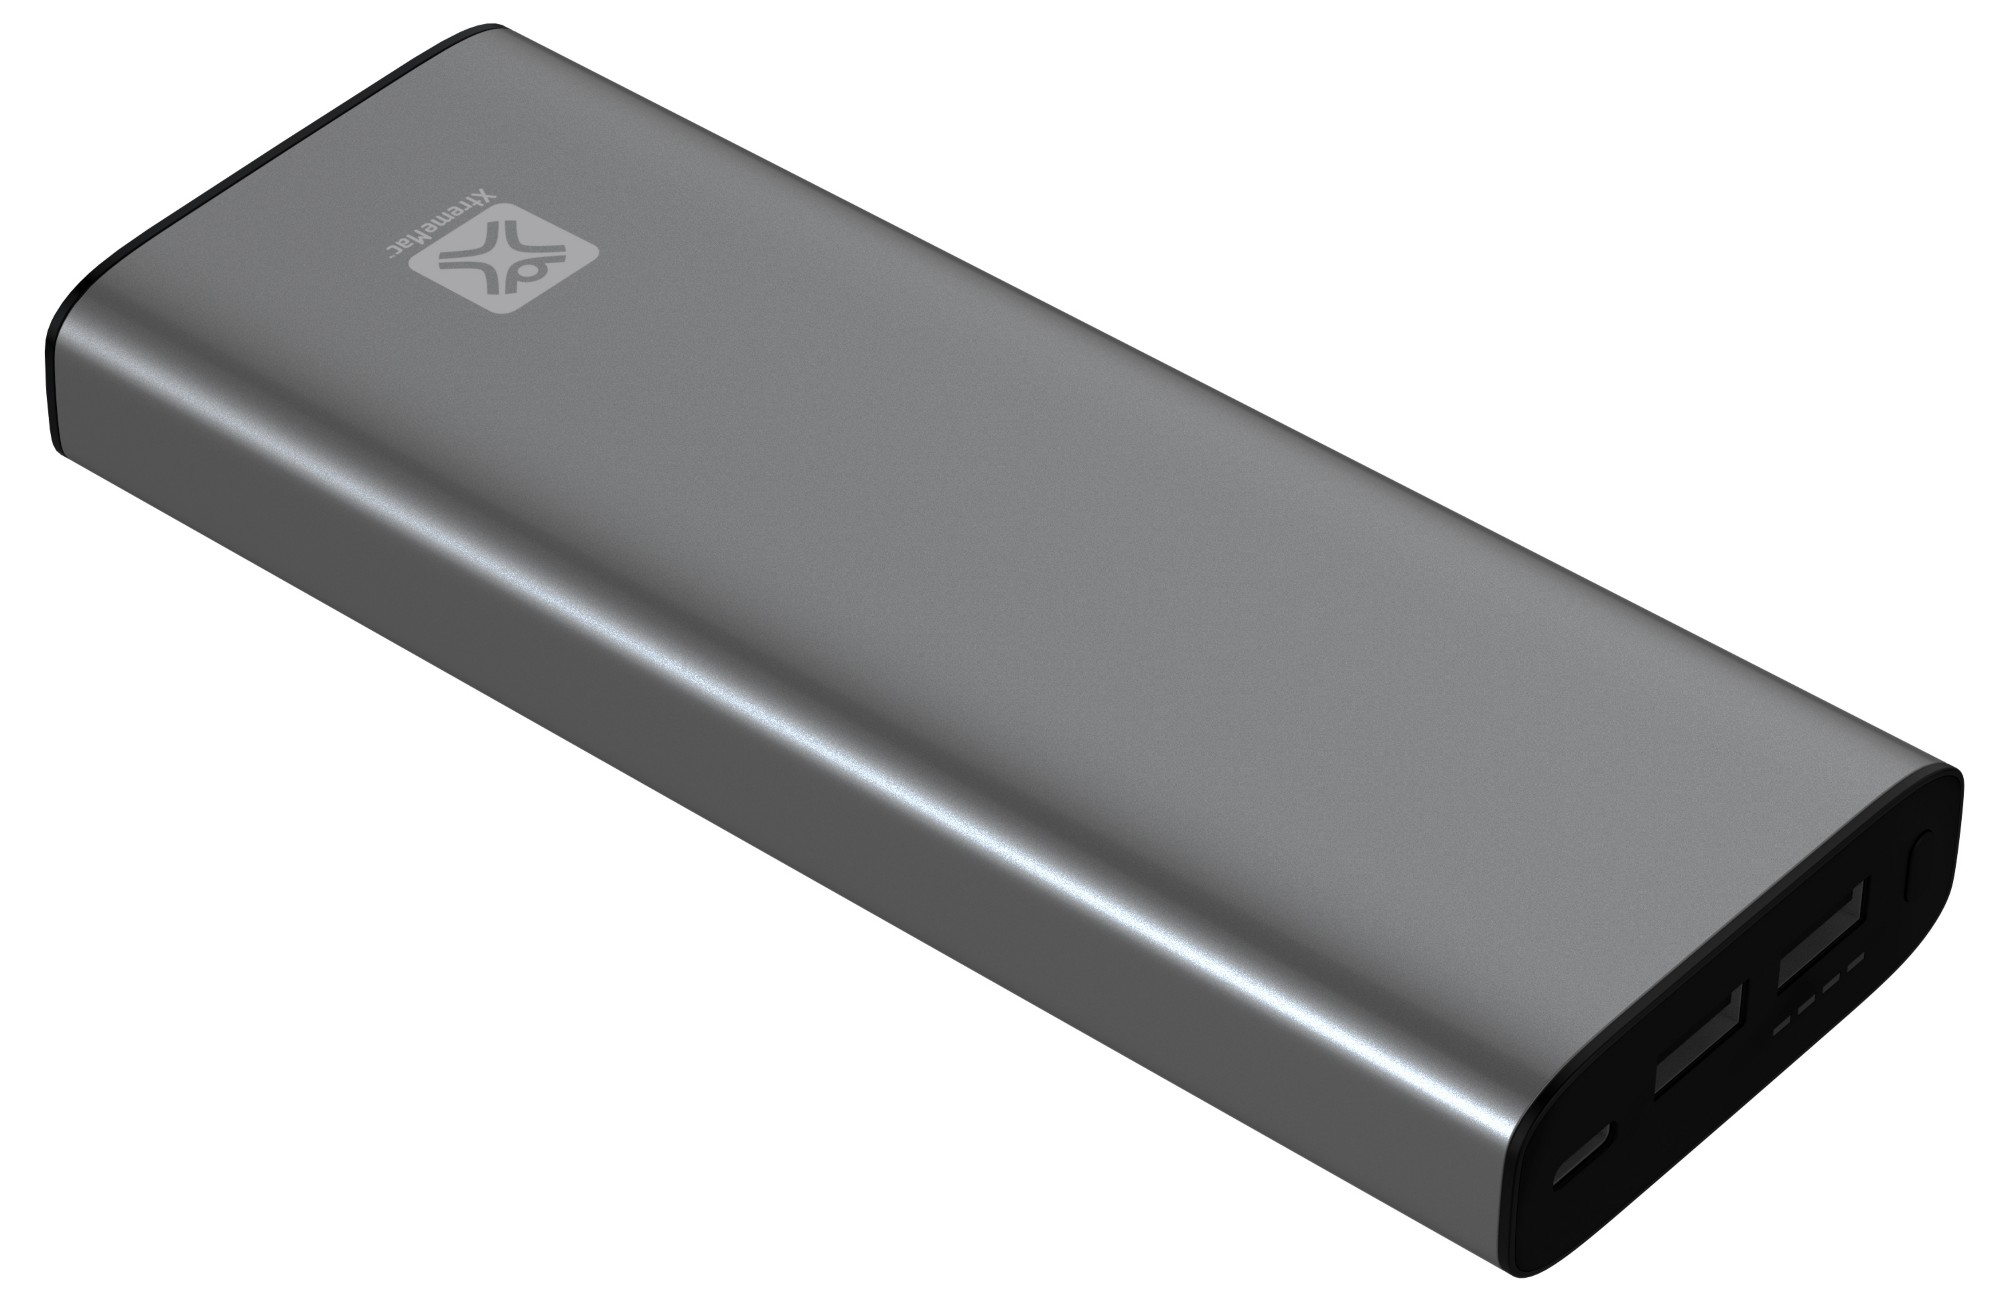 XTREMEMAC 214055 POWER BANK GREY LITHIUM-ION (LI-ION) 20100 MAH